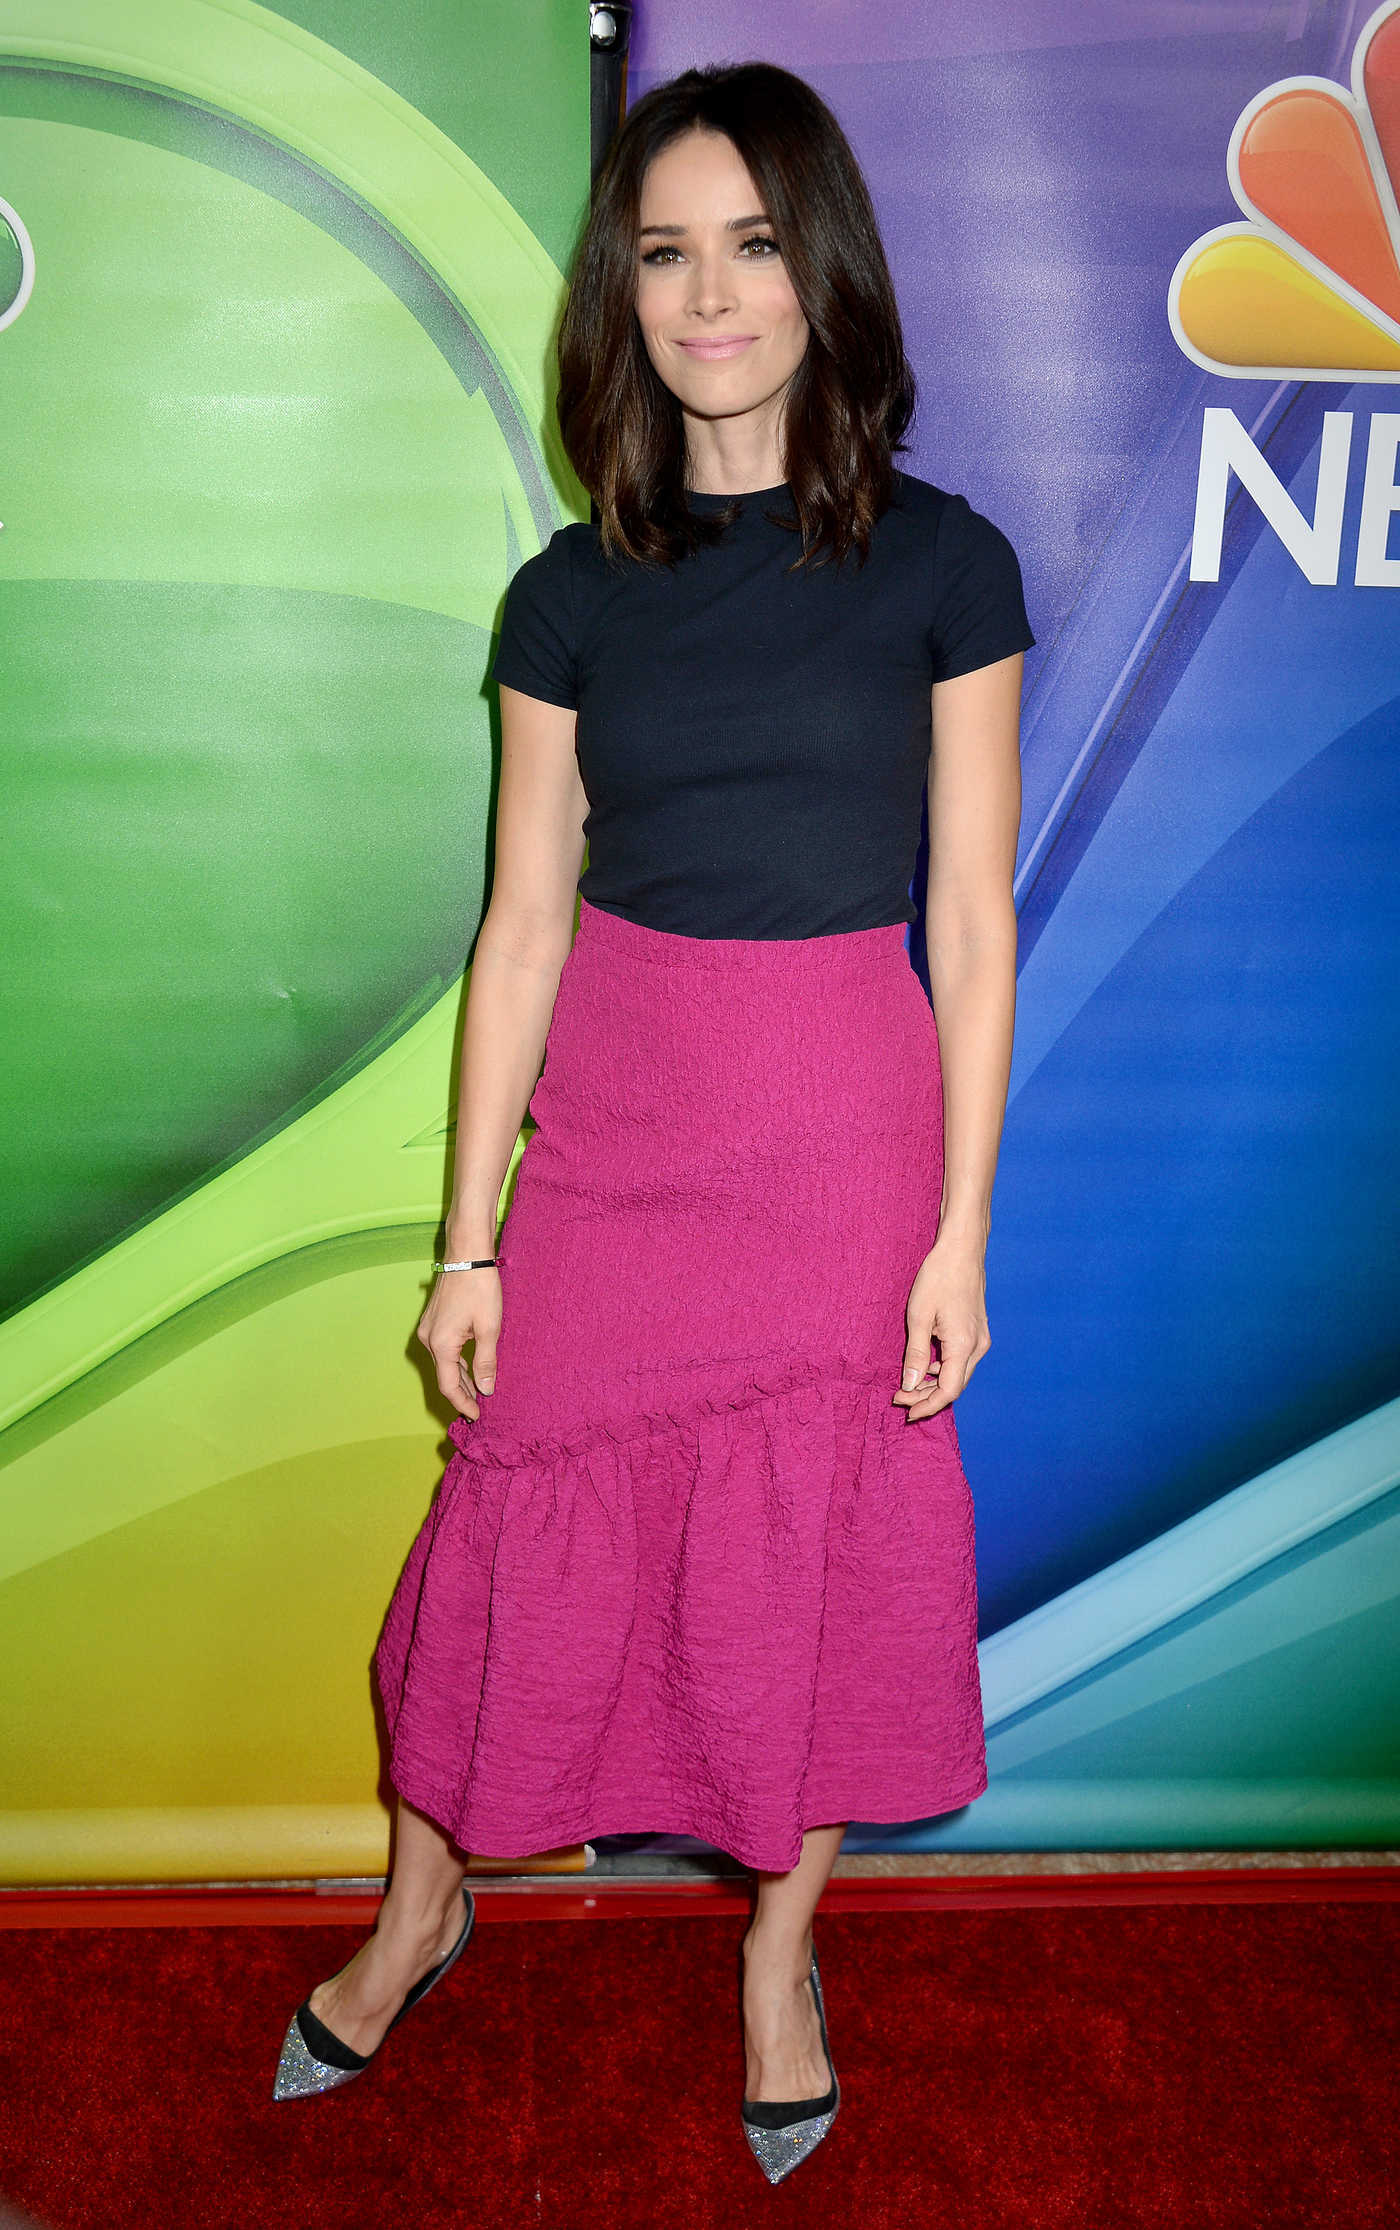 Abigail Spencer at the NBC Universal Press Tour at Hilton Hotel in Pasadena 08/02/2016